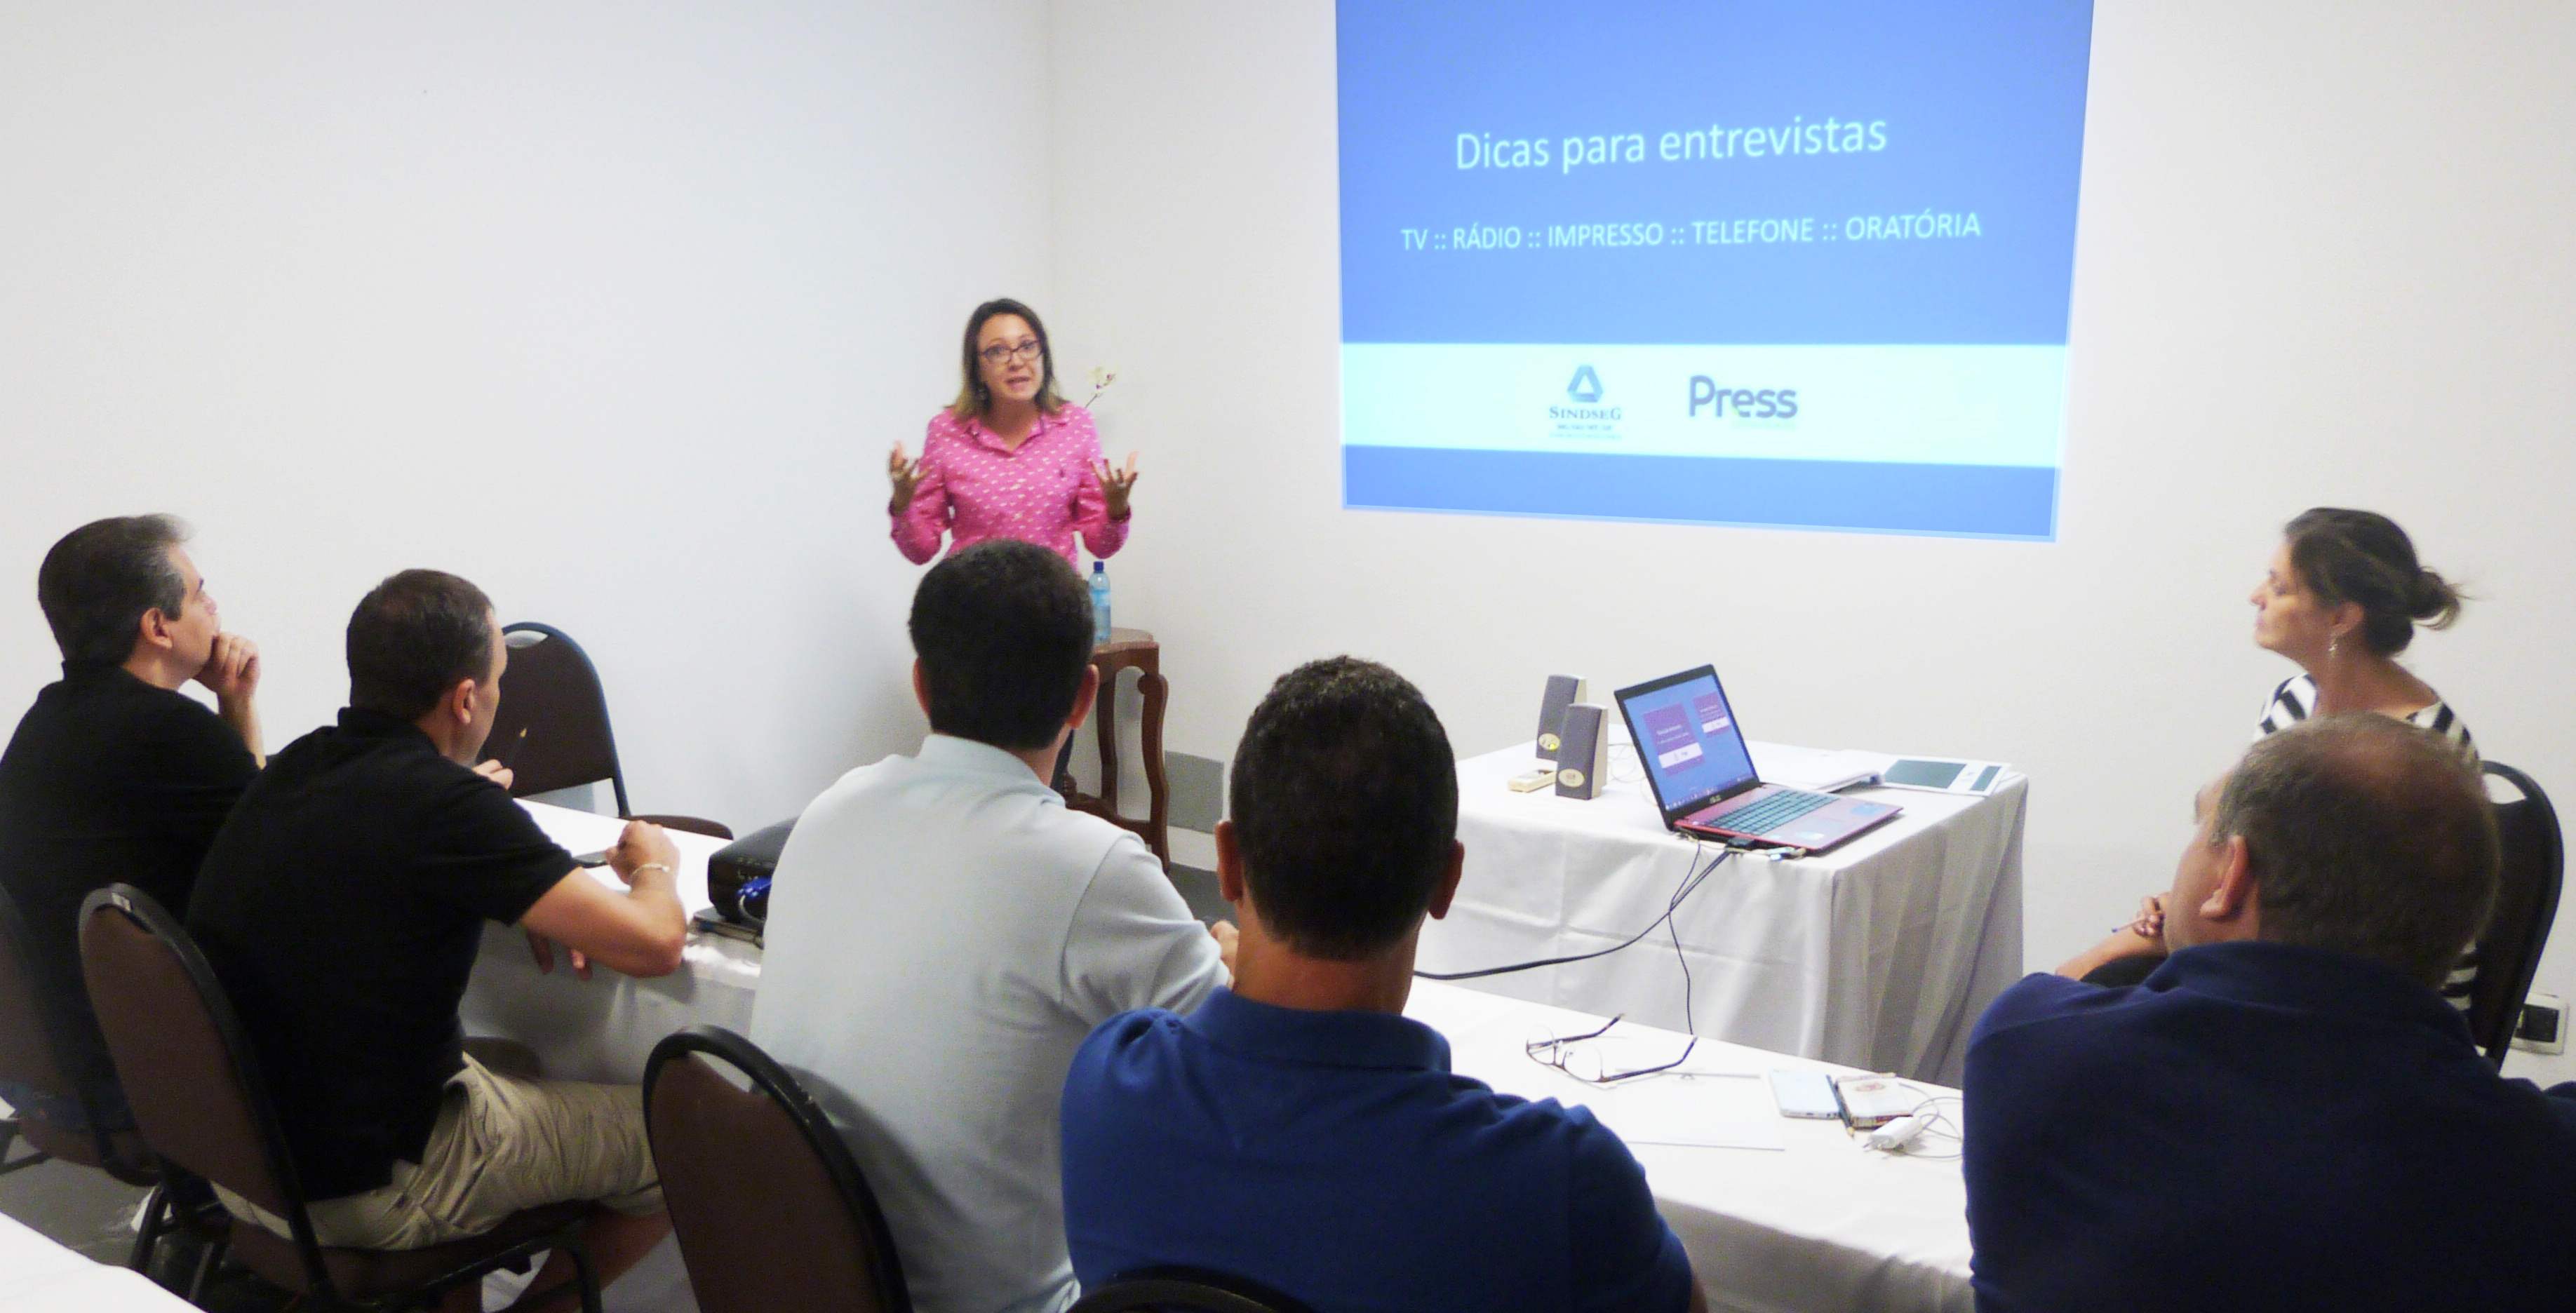 Press promove Media Training para capacitar porta-vozes de grandes empresas